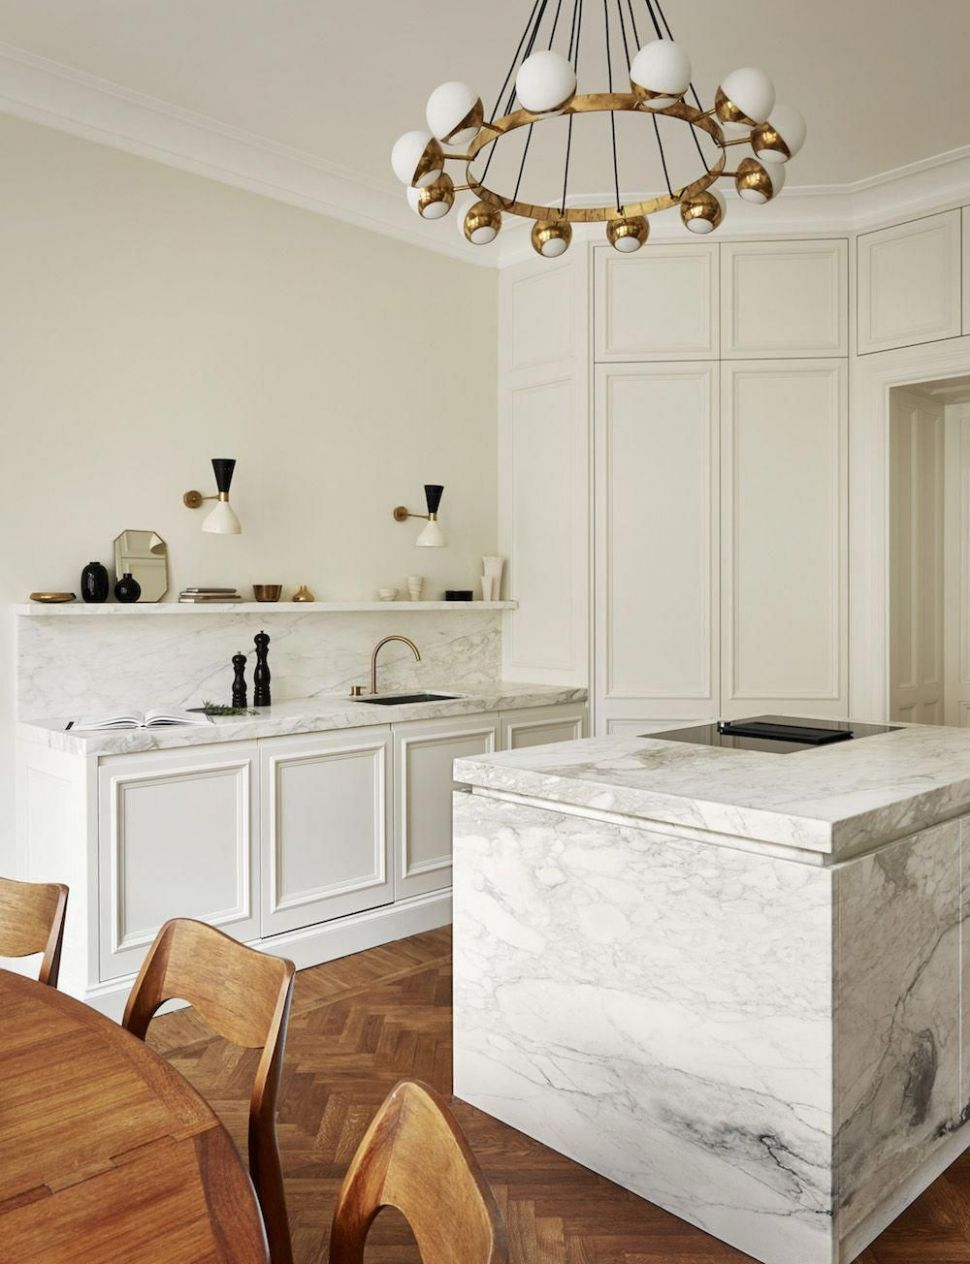 Countertops with absolute black granite i 12 - house of inspiration nærum